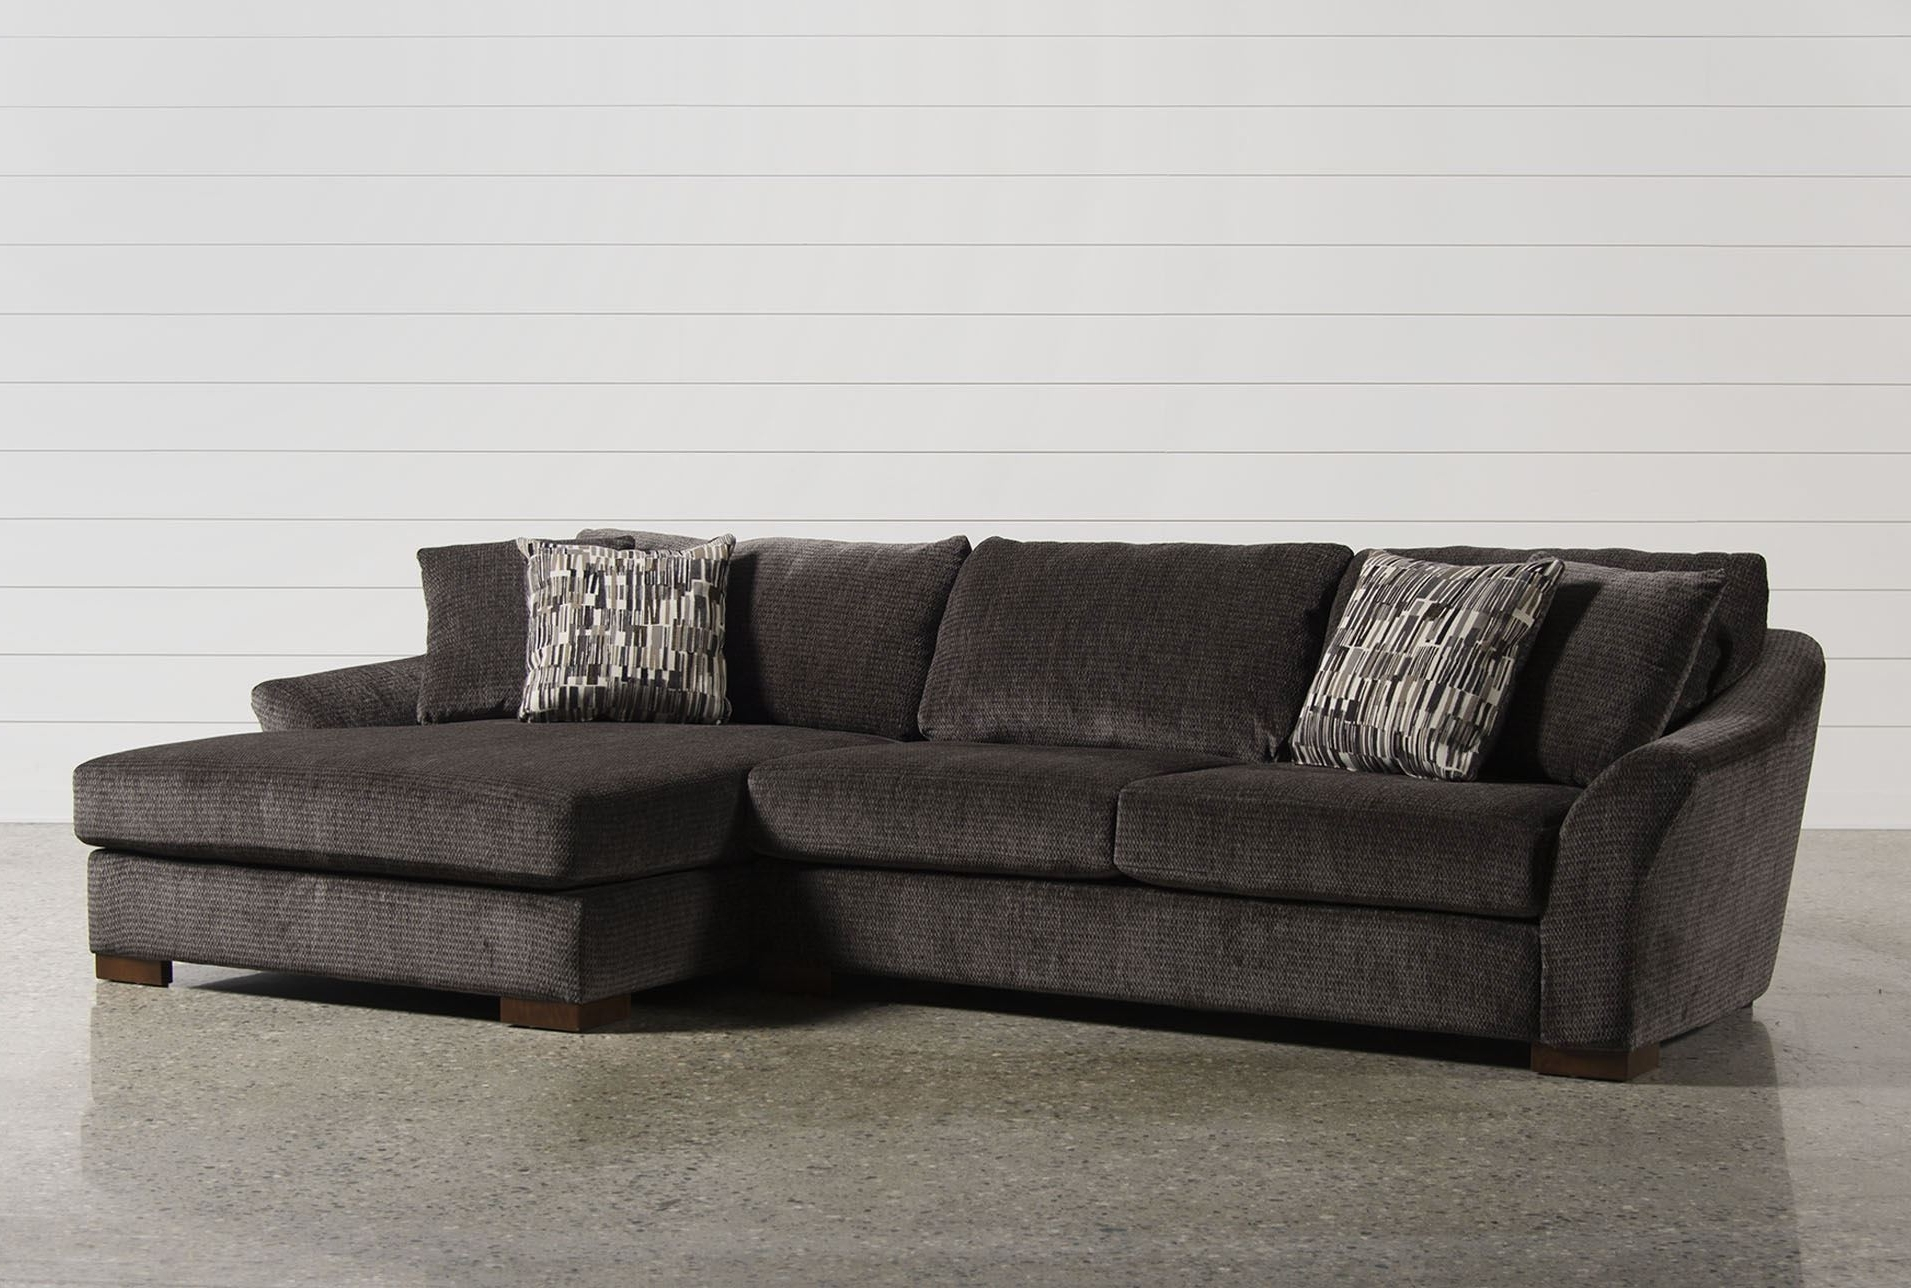 Living Spaces Sectional Sofas Intended For Preferred 2 Piece Sectional Sofa – Visionexchange (View 10 of 15)